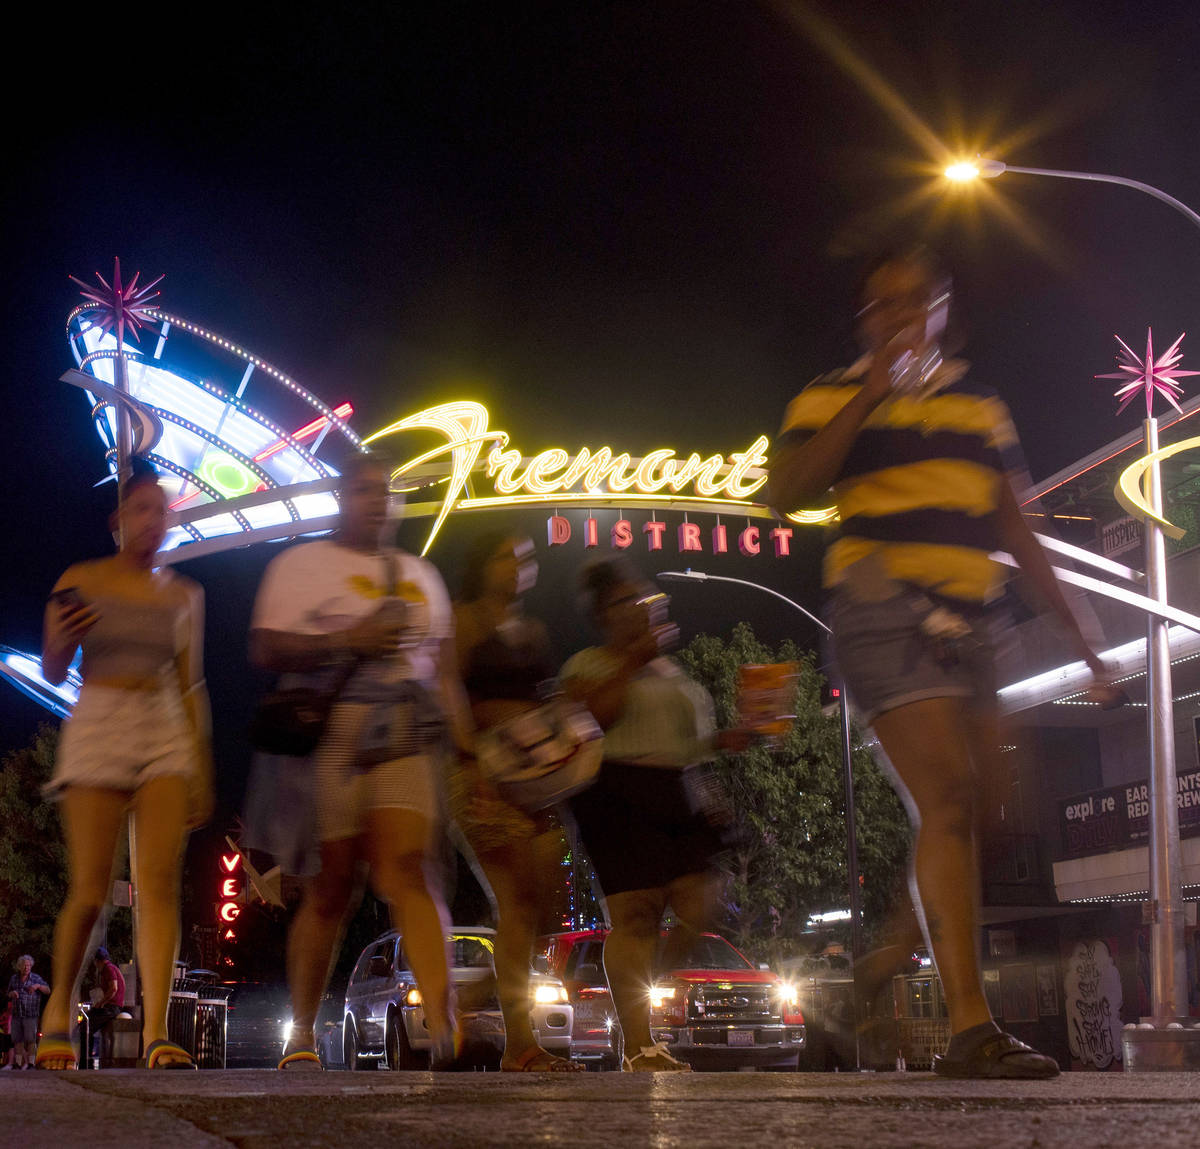 Pedestrians make way from Fremont District East into Fremont Street Experience as Phase Two of ...